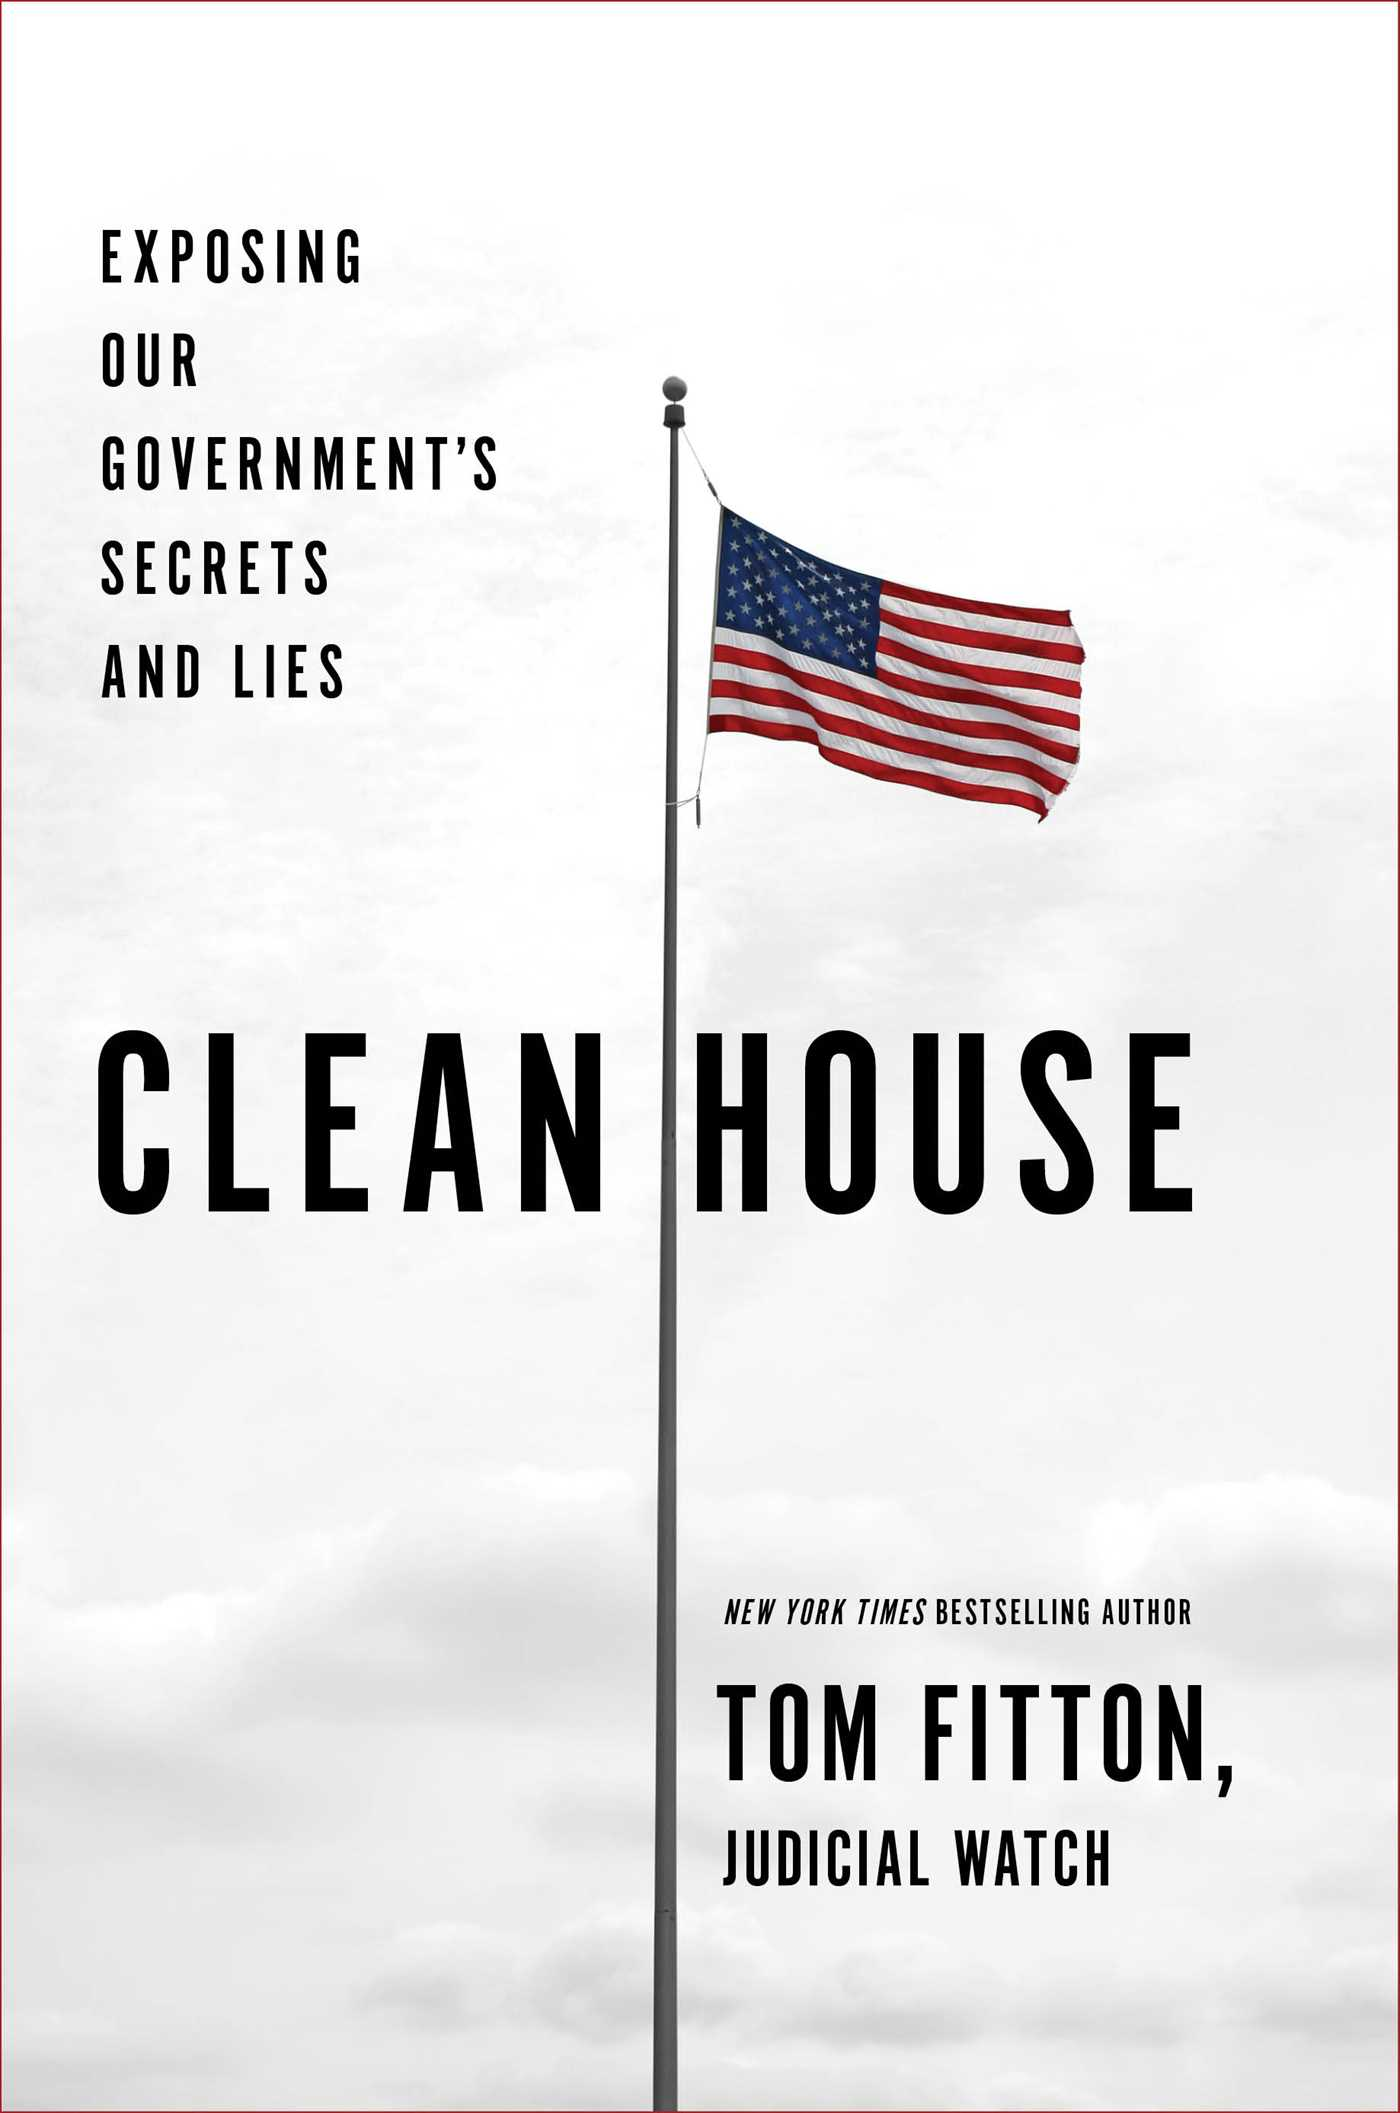 Clean House : Exposing Our Government's Secrets and Lies by Tom Fitton - Hardcover